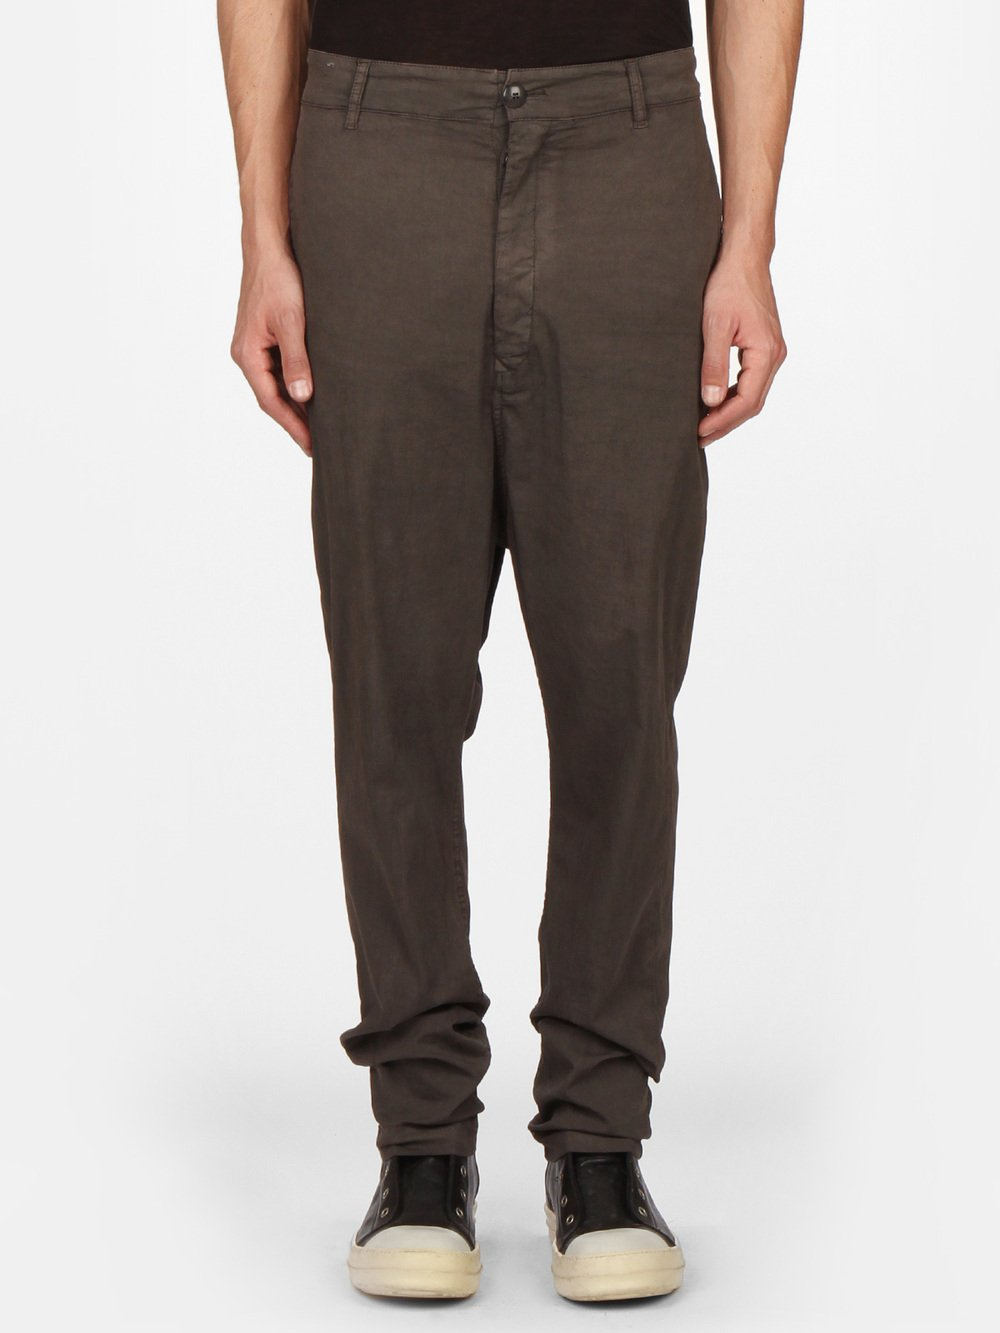 RICK OWENS DRKSHDW - EASY ASTAIRE